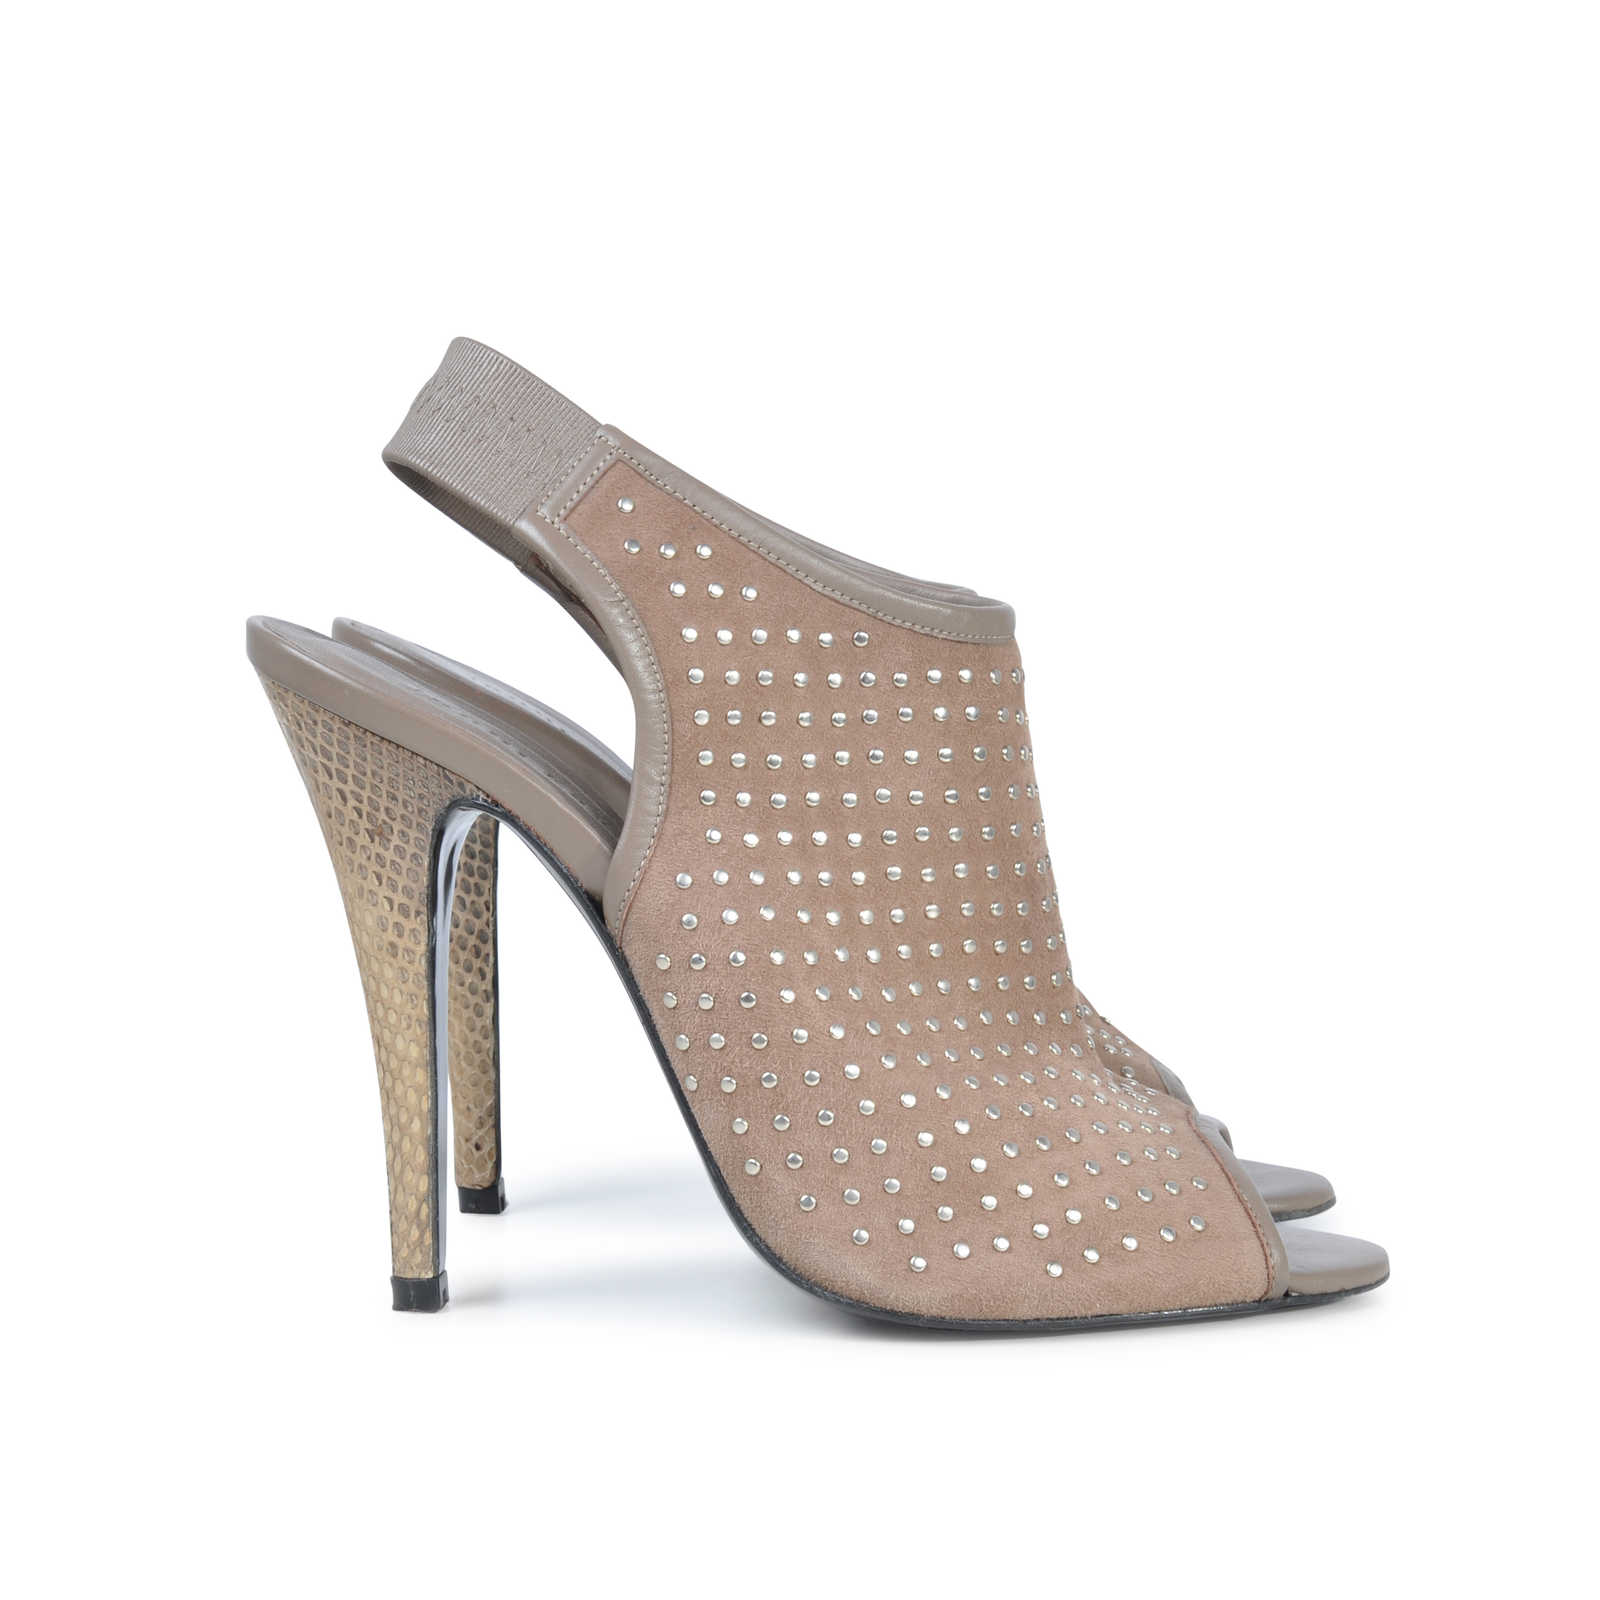 ... Authentic Pre Owned Jenni Kayne Studded Slingback Heels (PSS-074-00014) ...